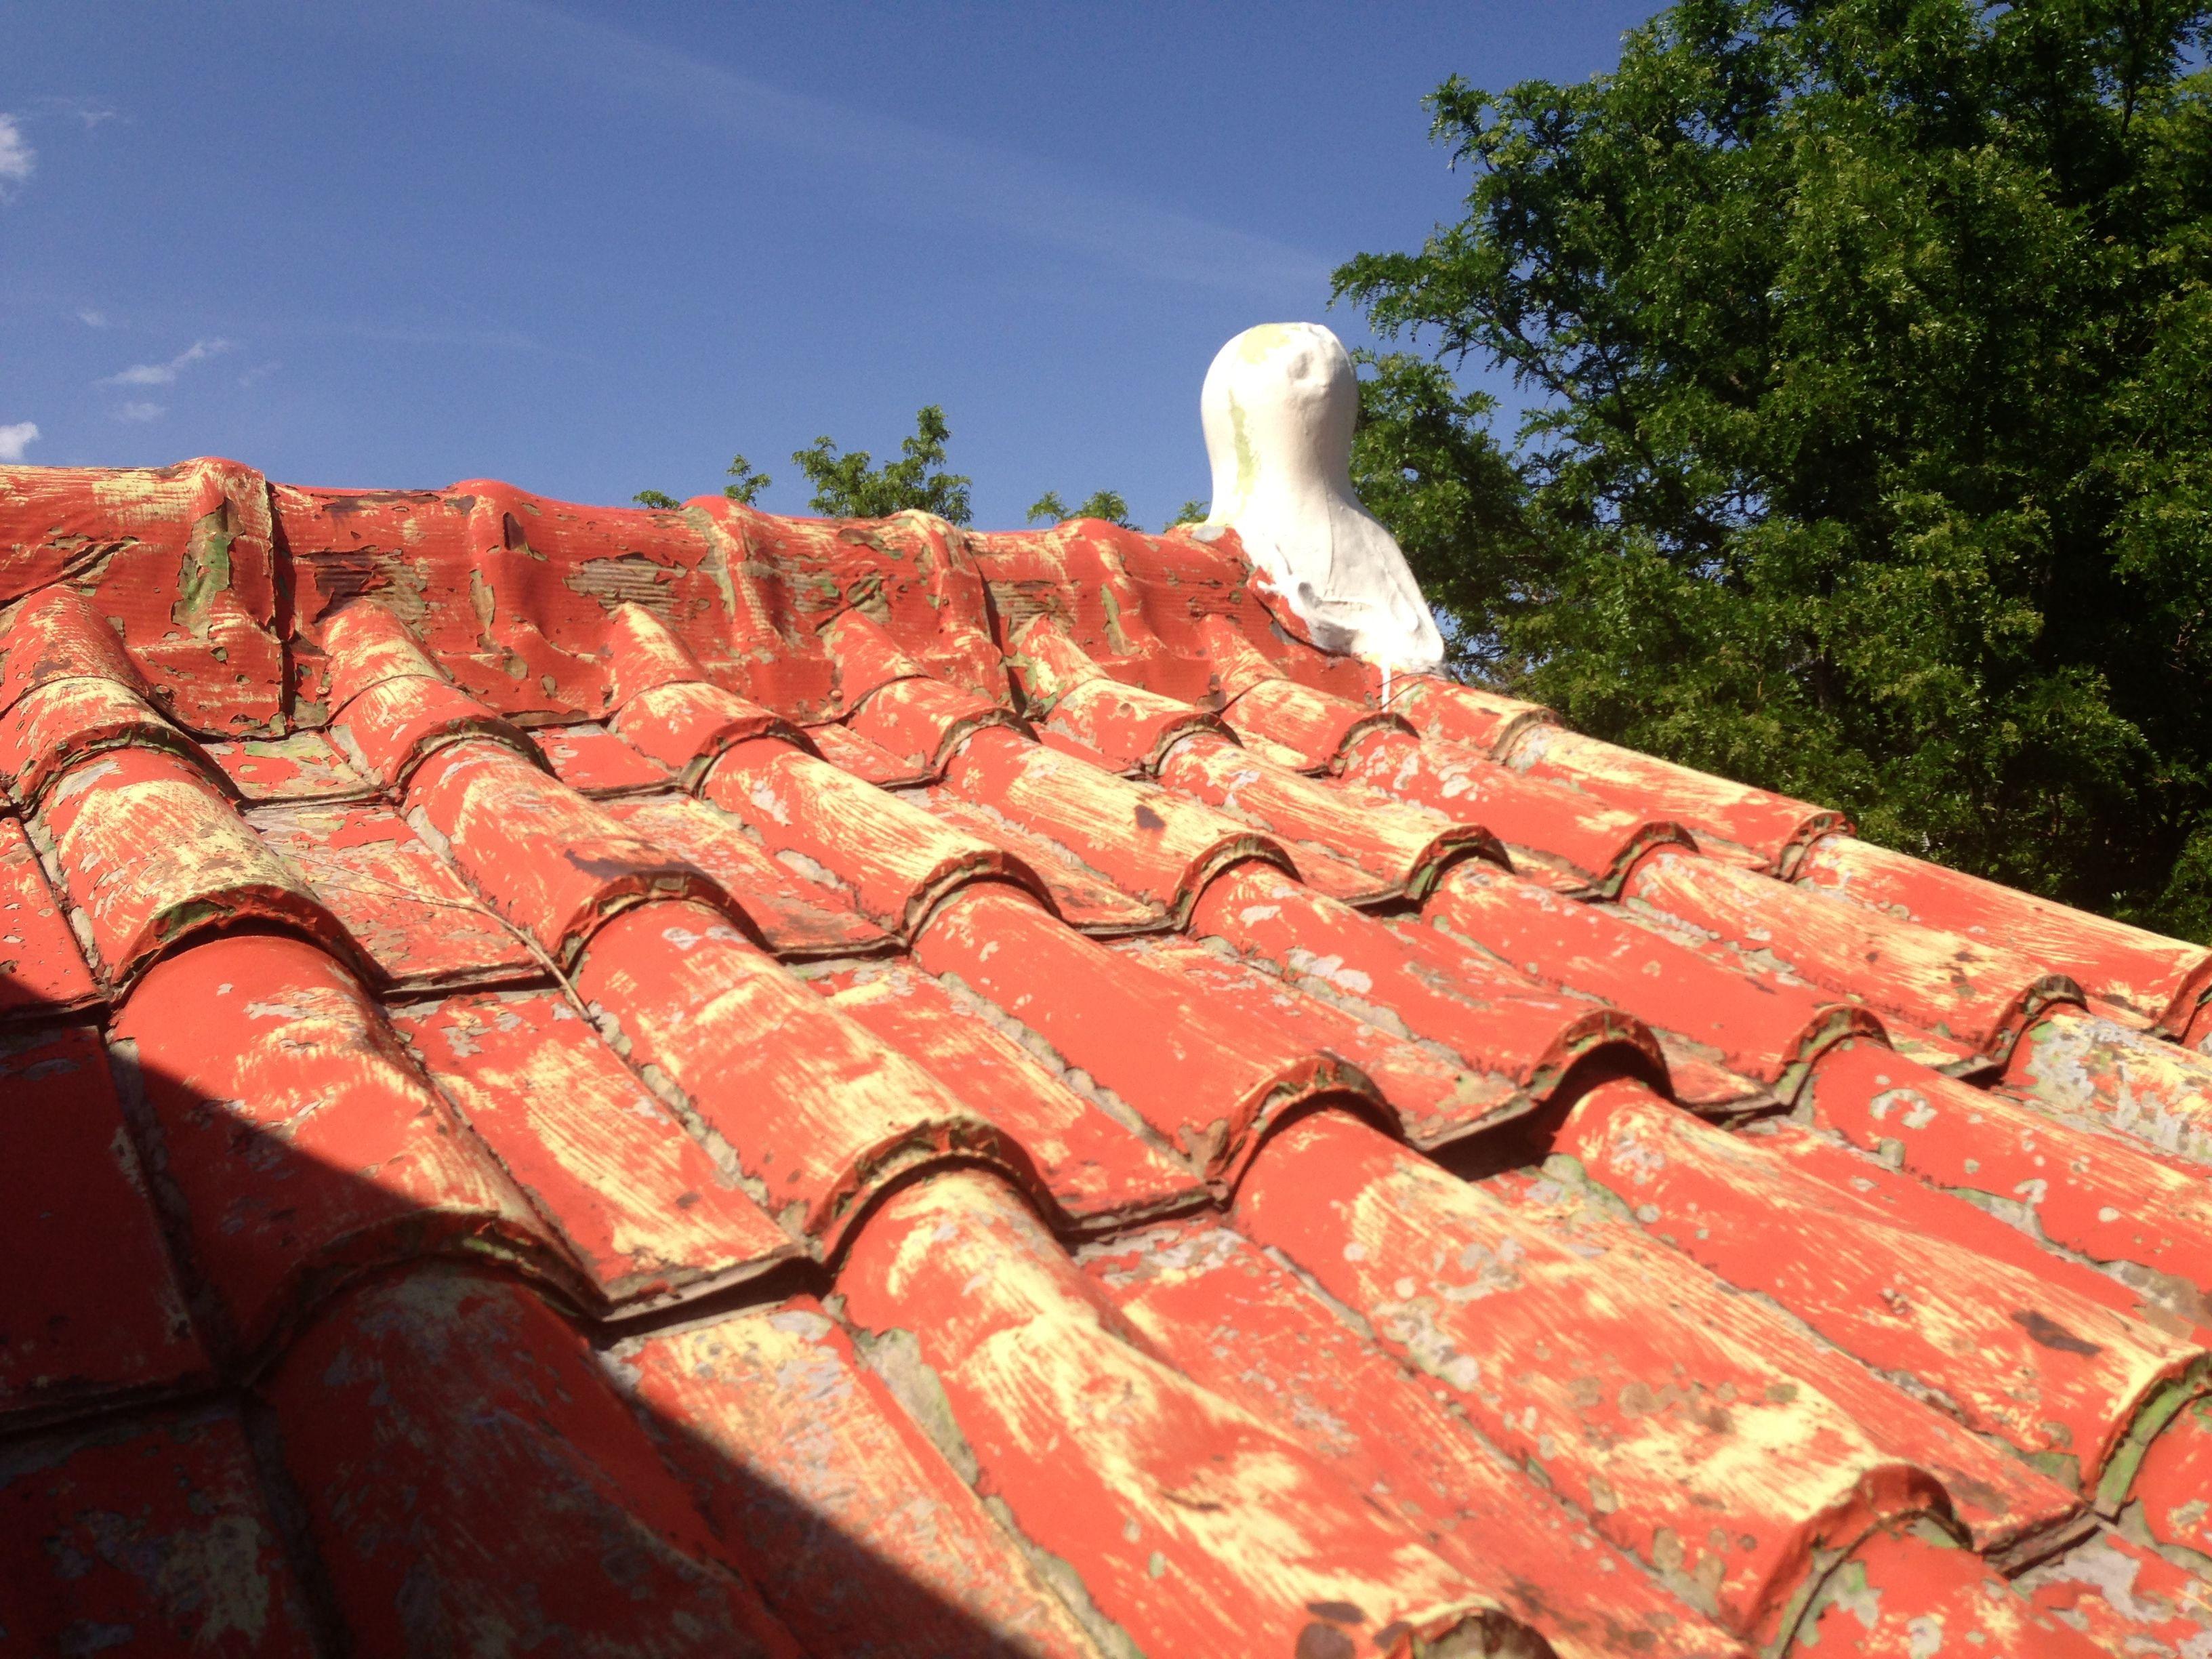 Stamped Metal Roof 109 Years Old 1717 Race St Denver Co Historic Buildings Metal Roof Home Styles